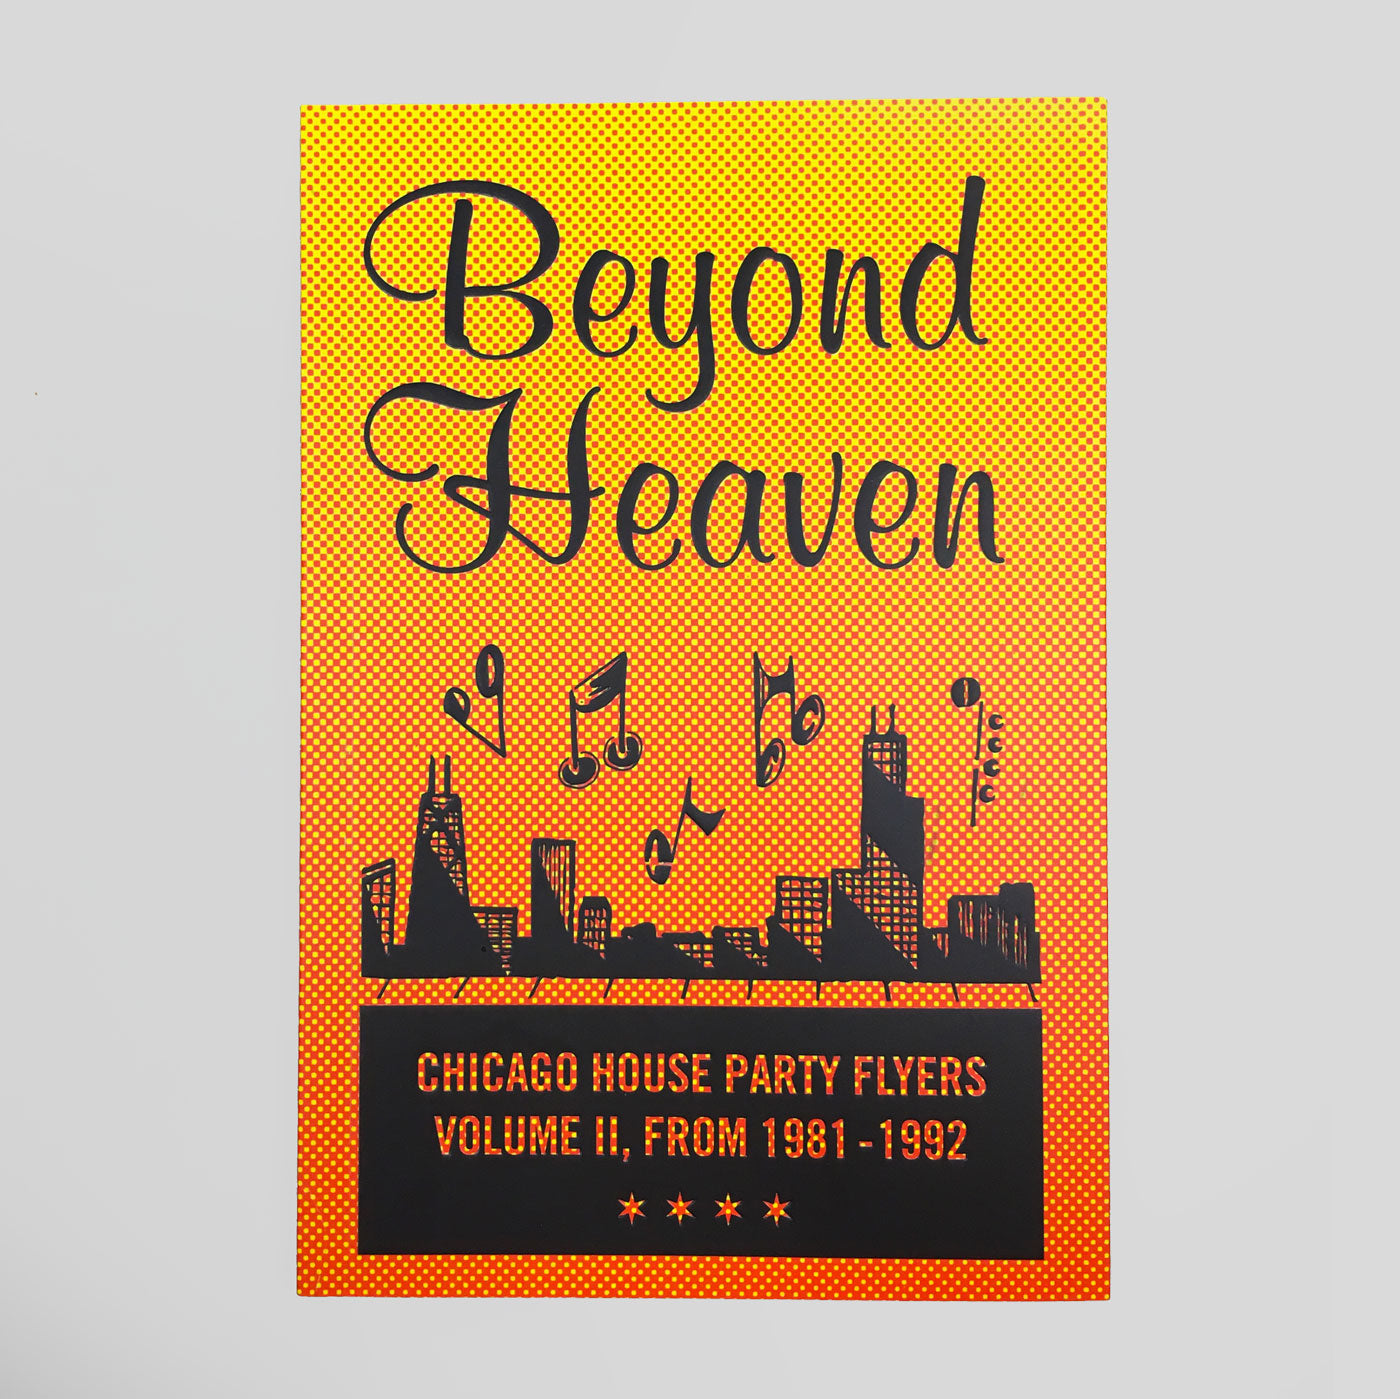 Beyond Heaven: Chicago House Party Flyers from 1981 - 1992 - Colours May Vary